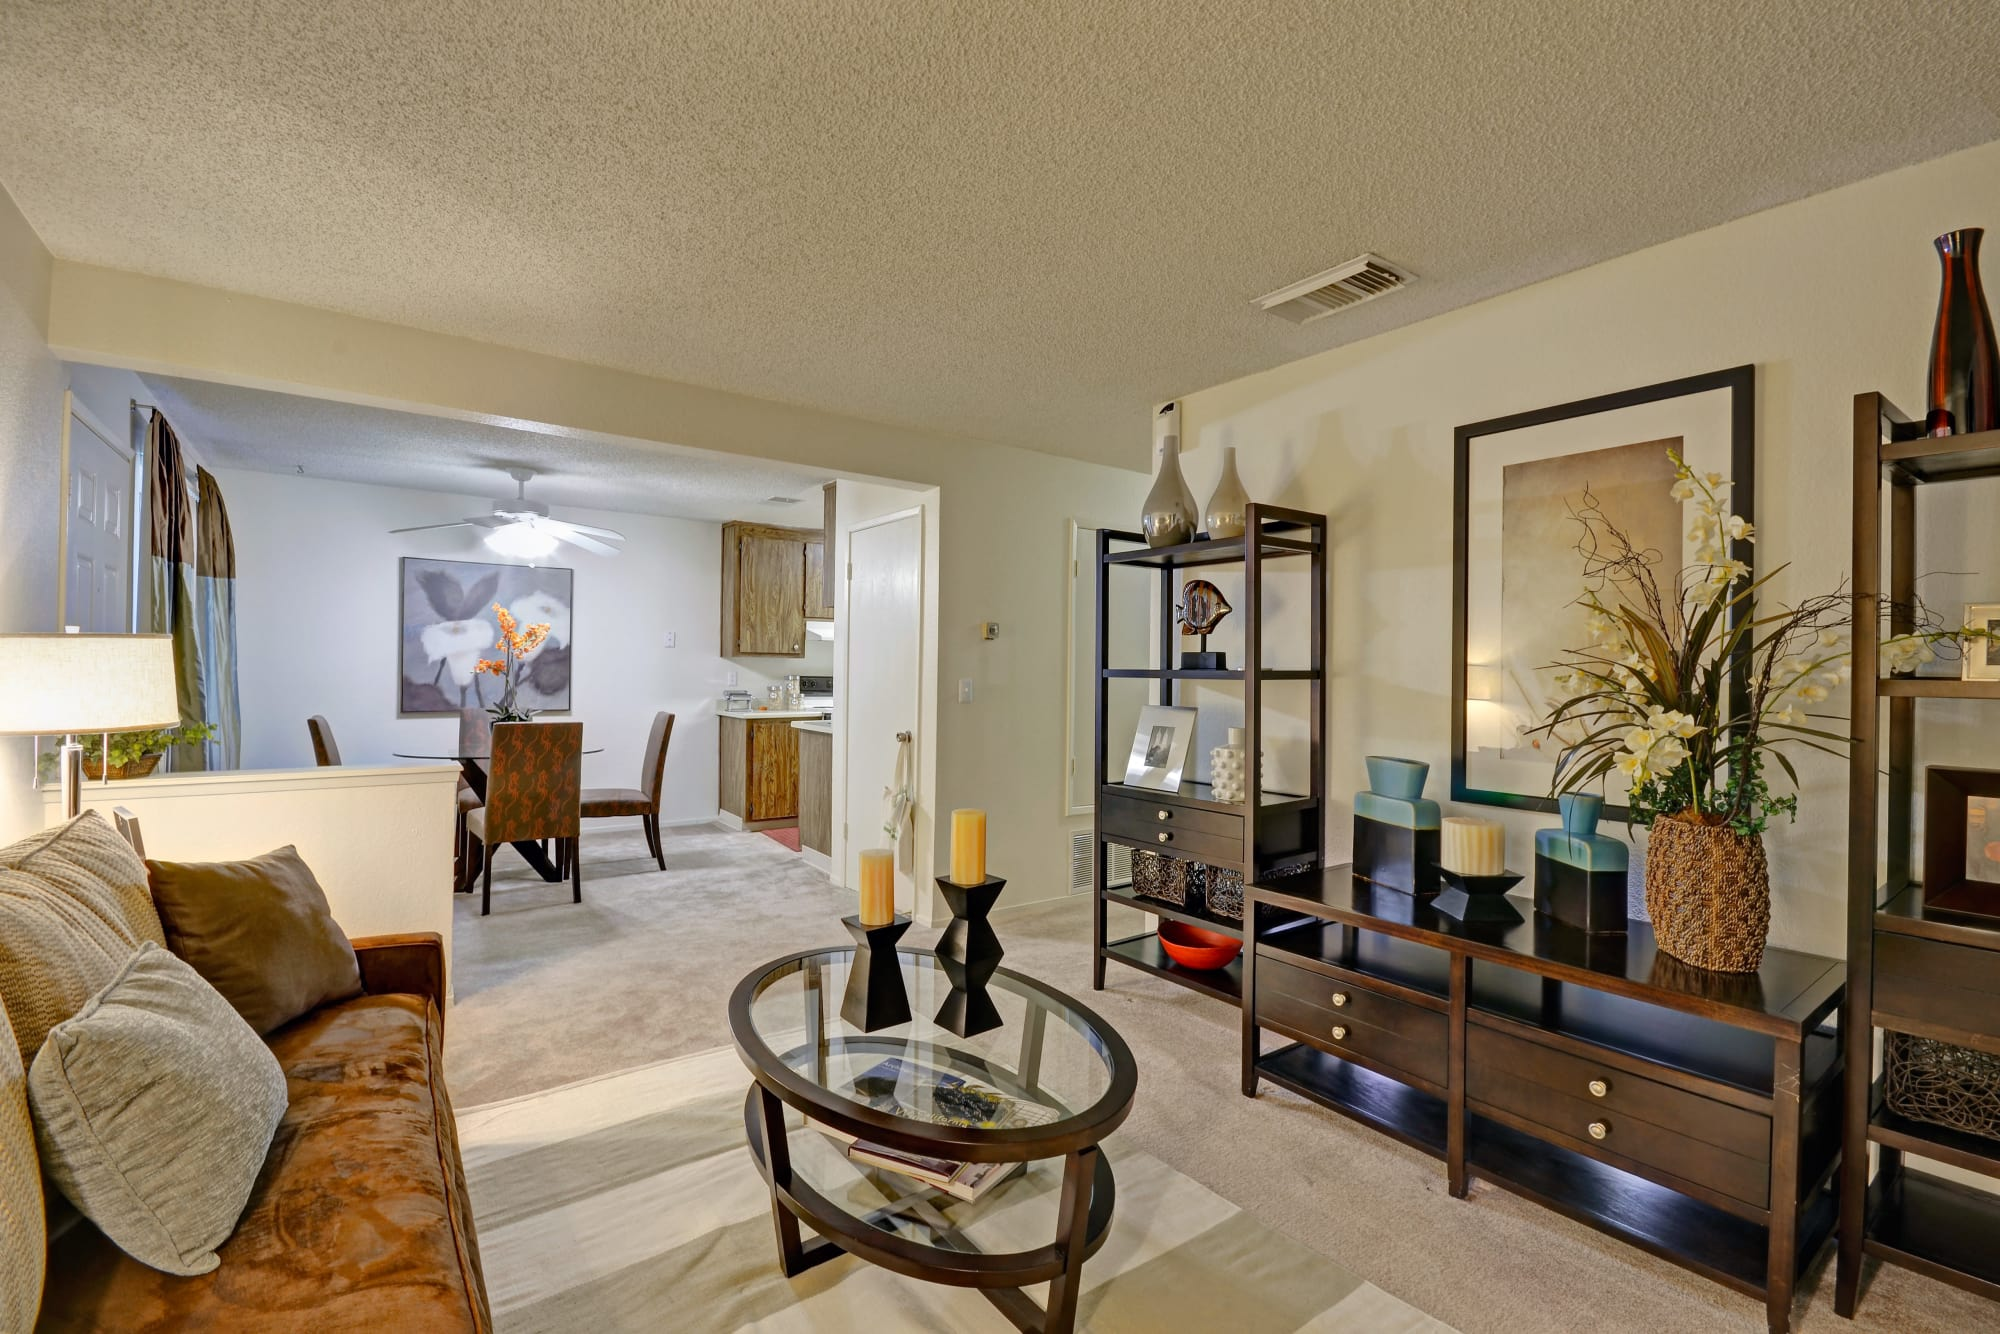 Avery Park Apartments living room with spacious layout